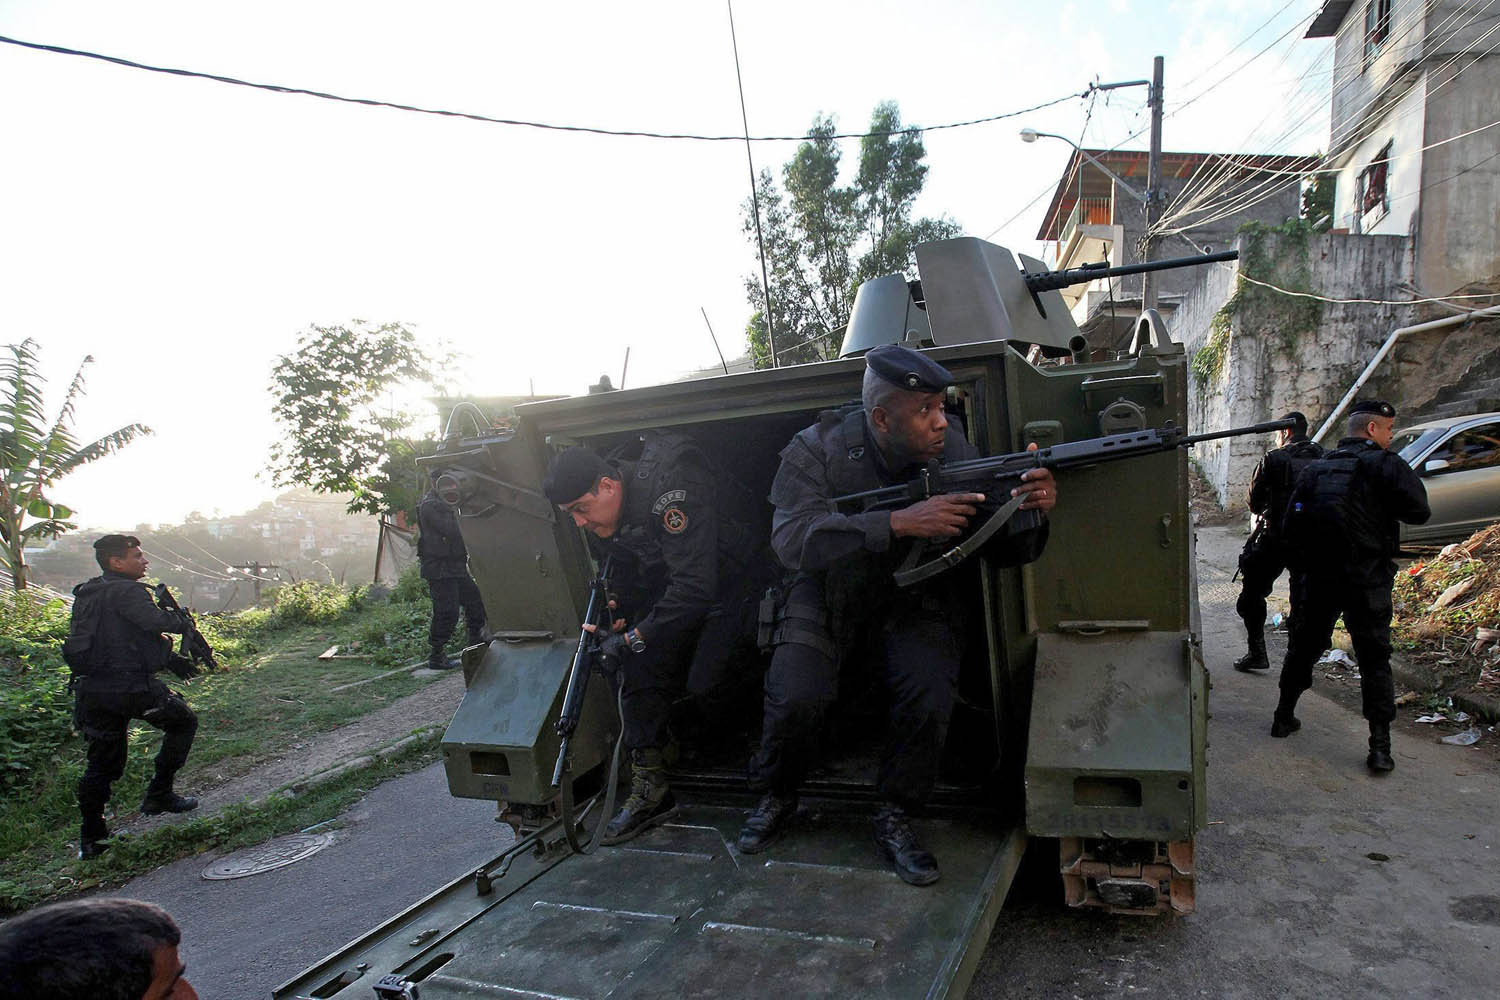 Oct. 6, 2013. Special forces of the Bazilian military police unboard an armored personnel carrier during an operation at the Lins de Vasconcelos favela in Rio de Janeiro.